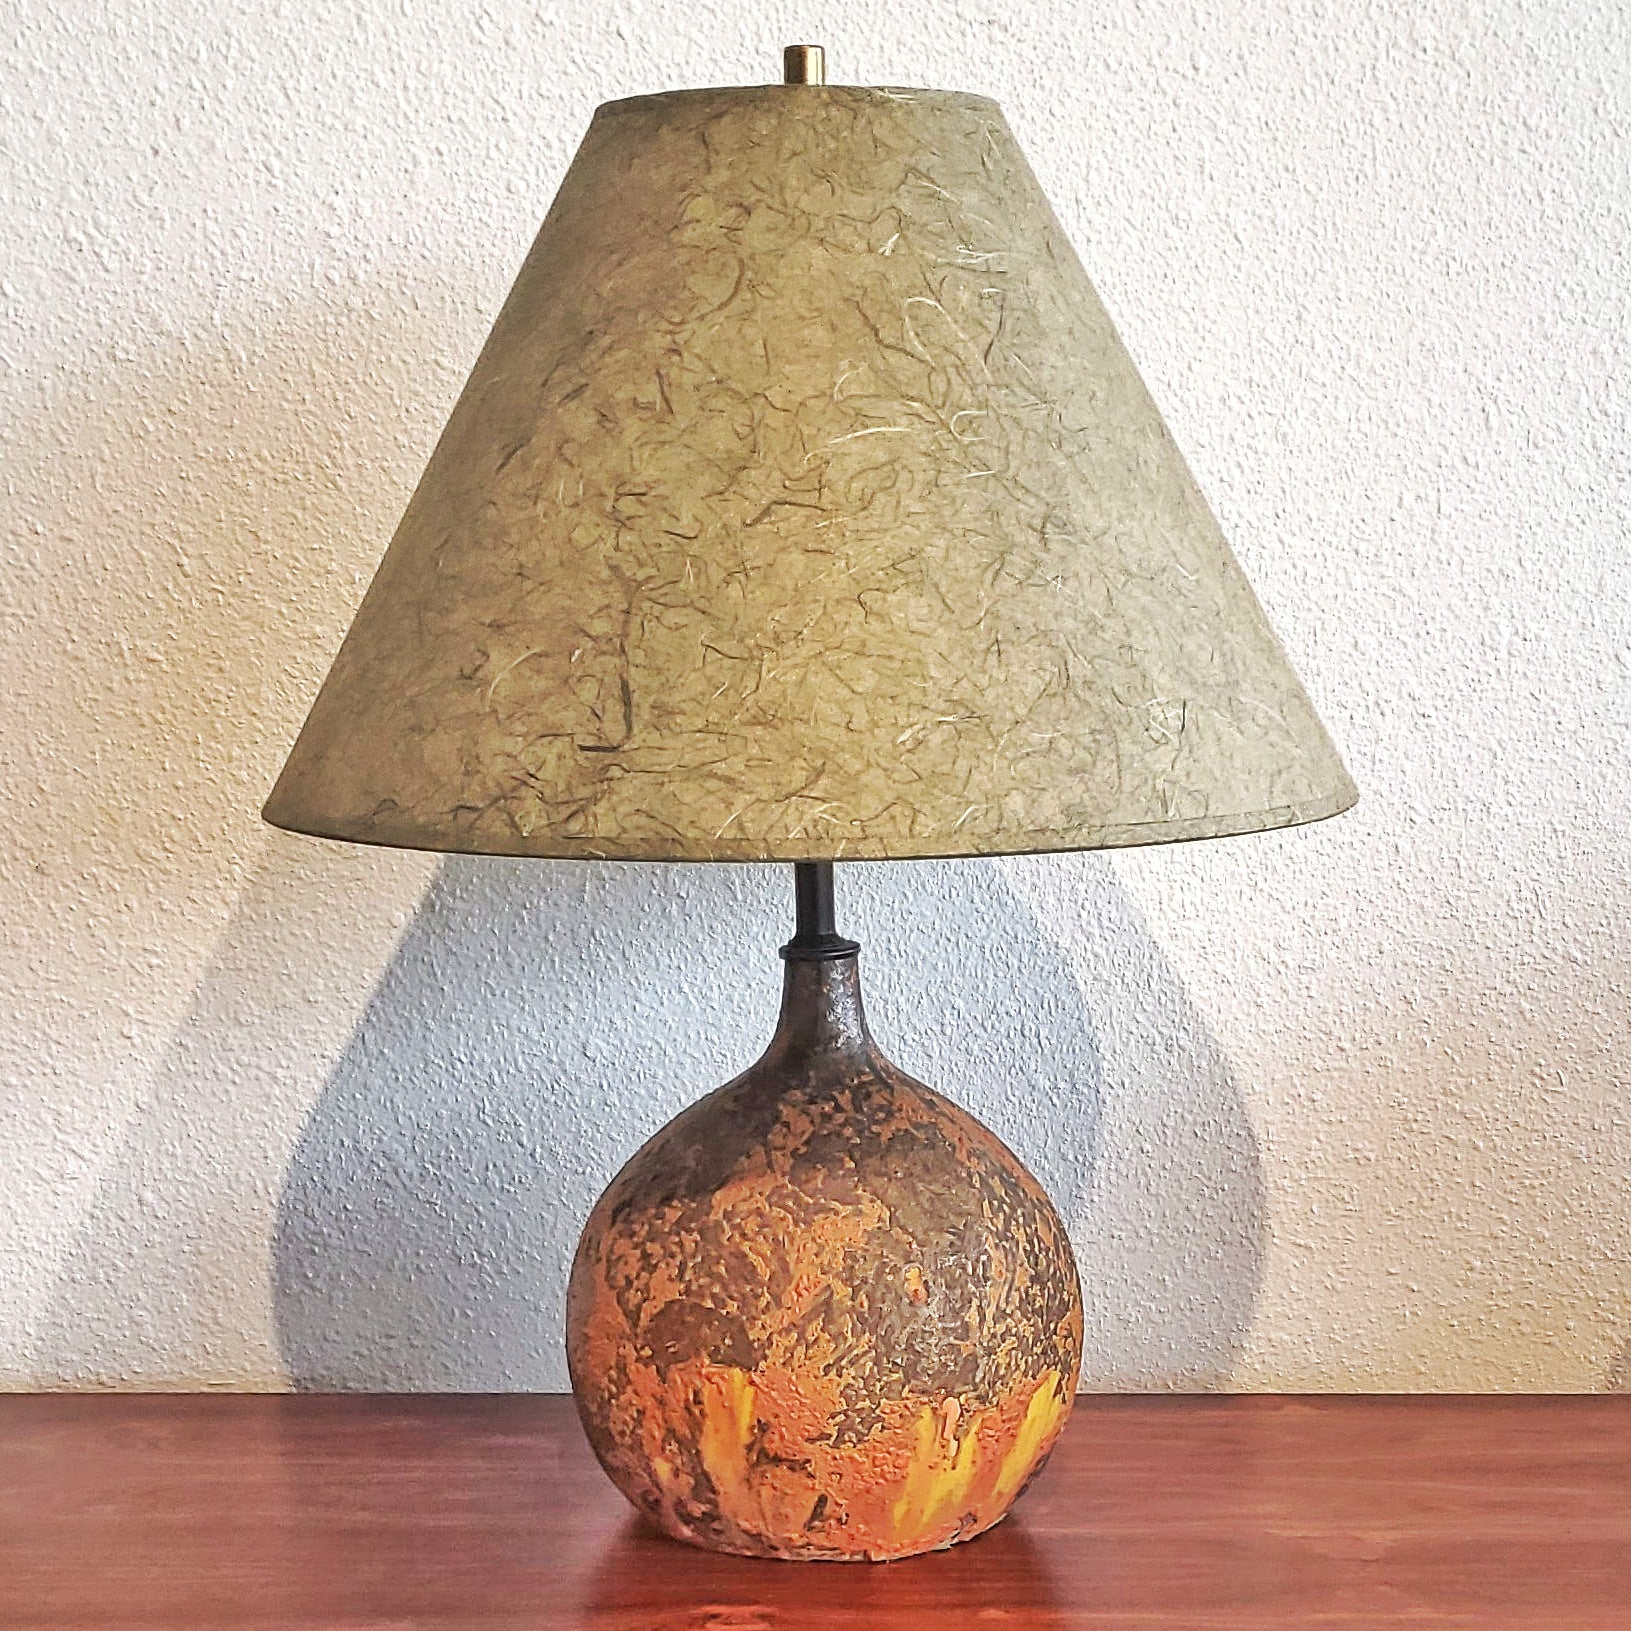 CRUSTY VOLCANIC BALL LAMP